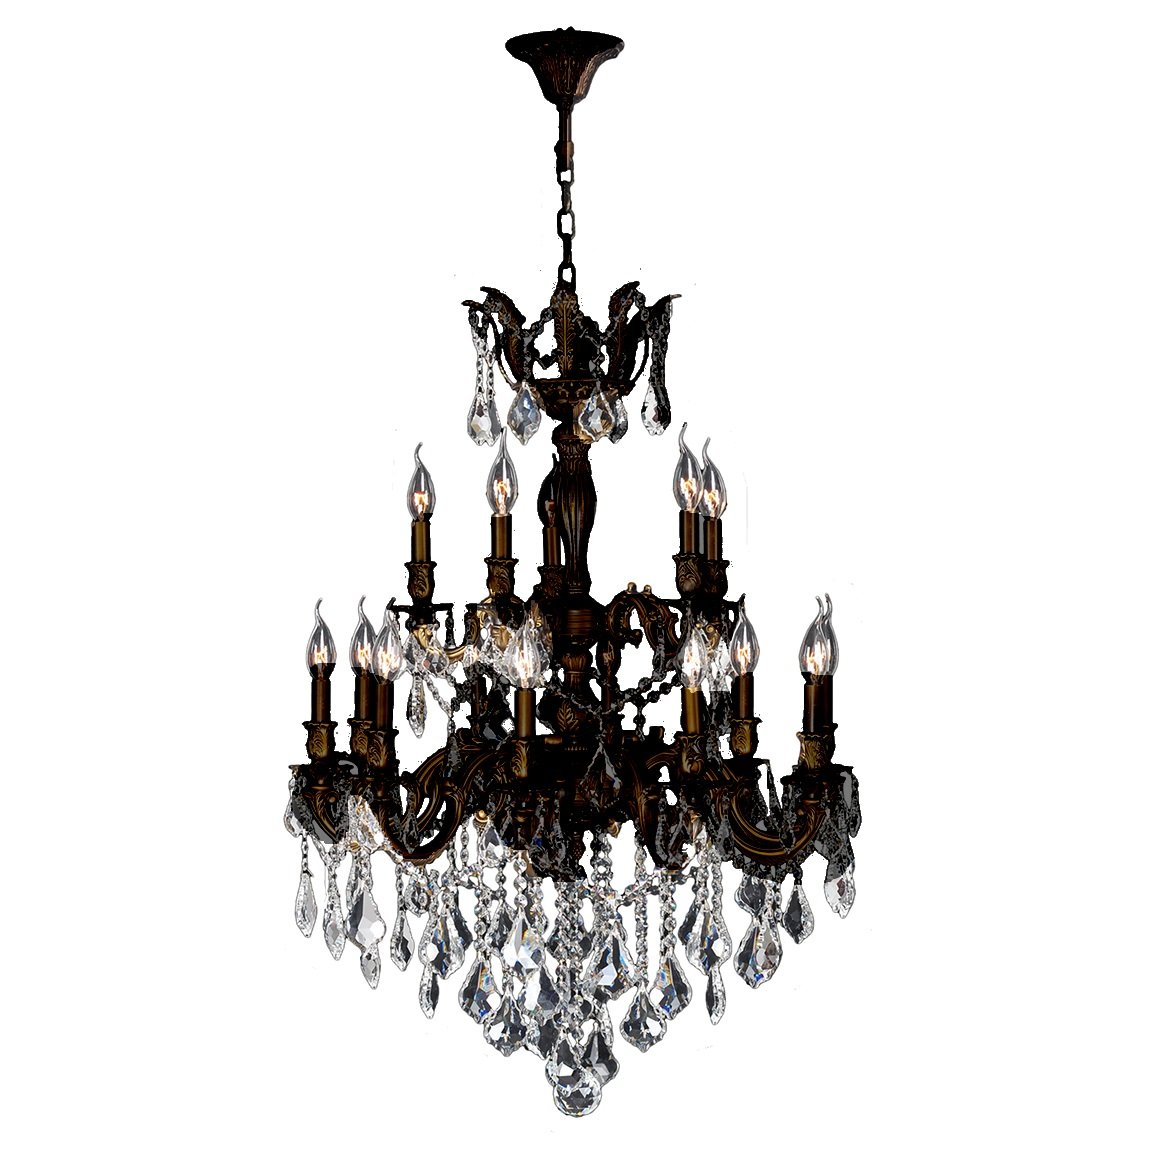 Worldwide Lighting Versailles Collection 15 Light Flemish Brass Finish and Clear Crystal Chandelier 27'' D x 39'' H Two 2 Tier Large by Worldwide Lighting (Image #1)